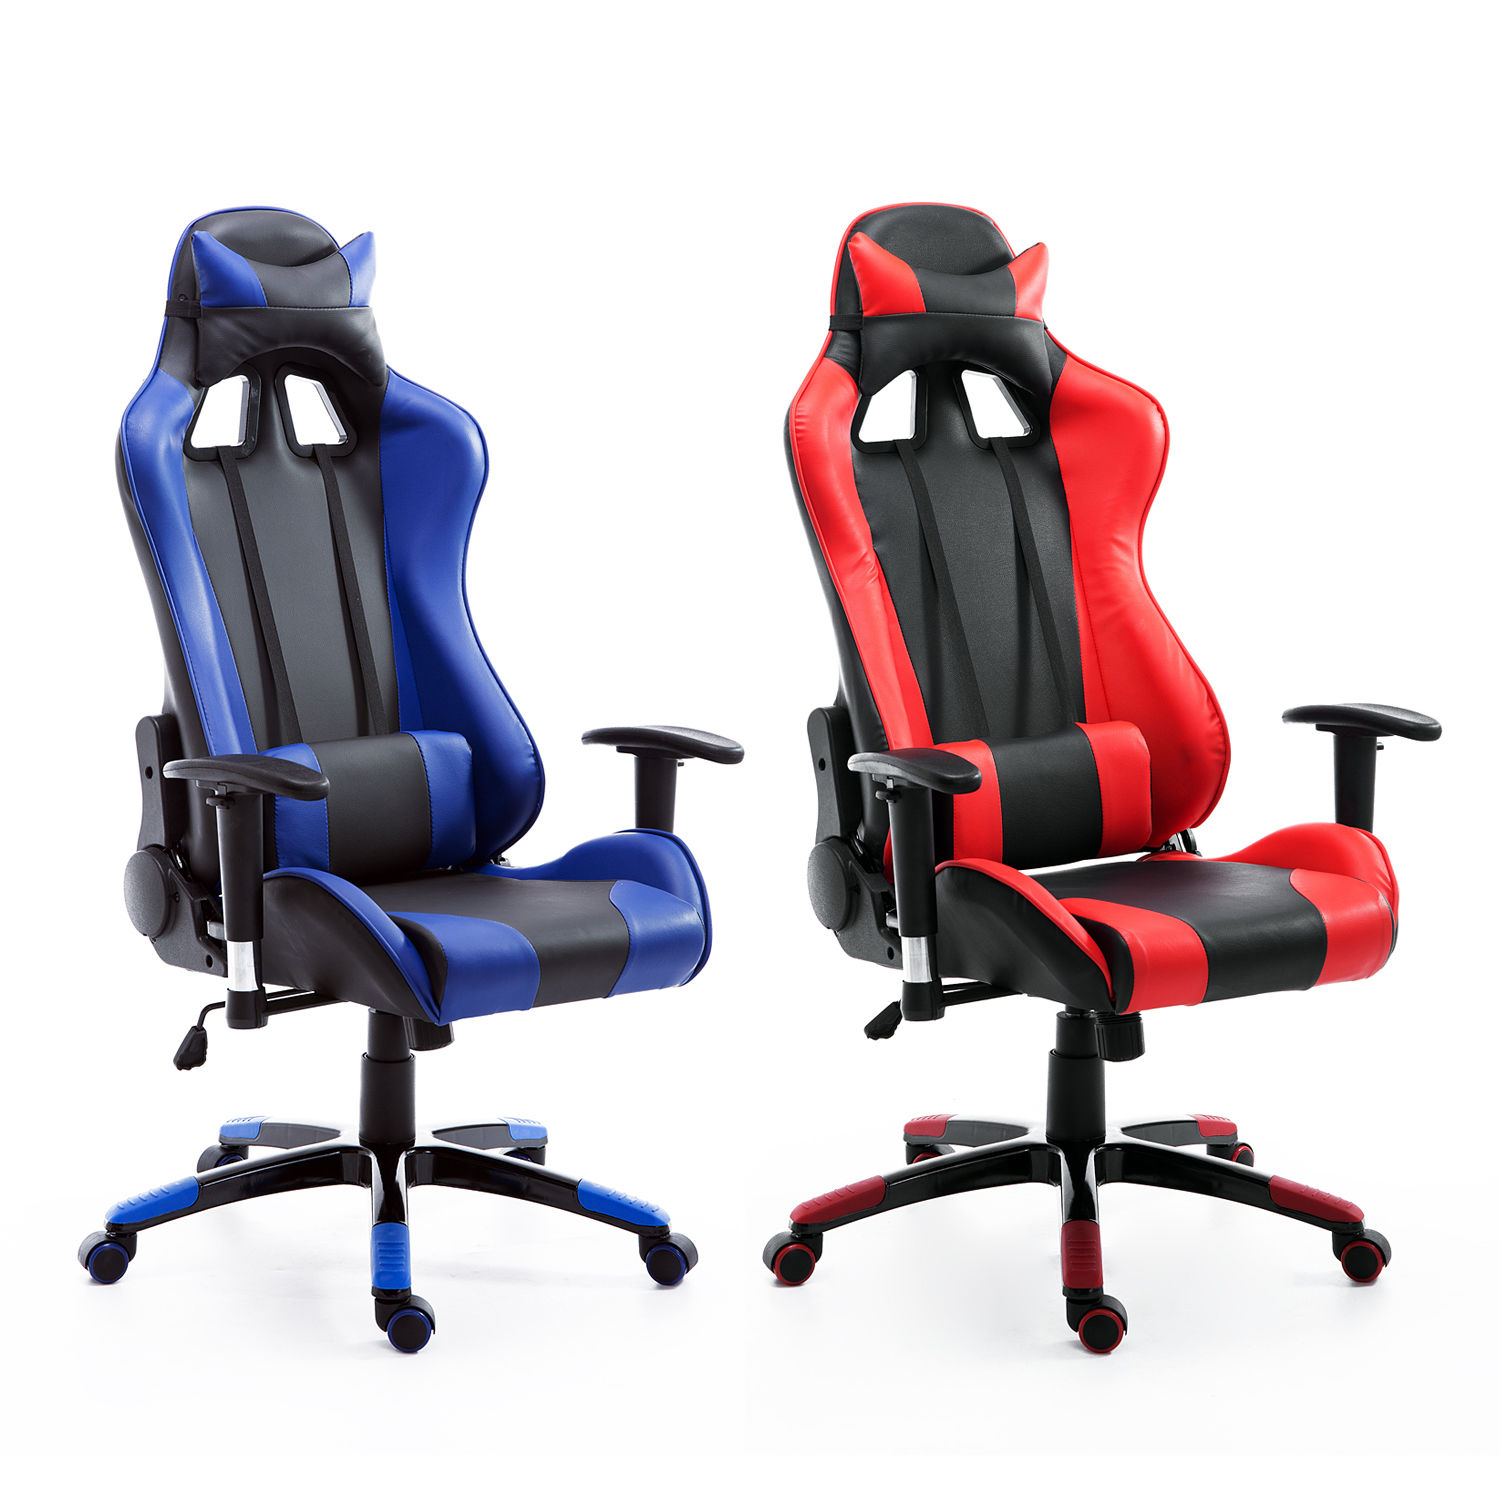 gaming chair ebay cast iron and table set ergonomic racing high back office executive